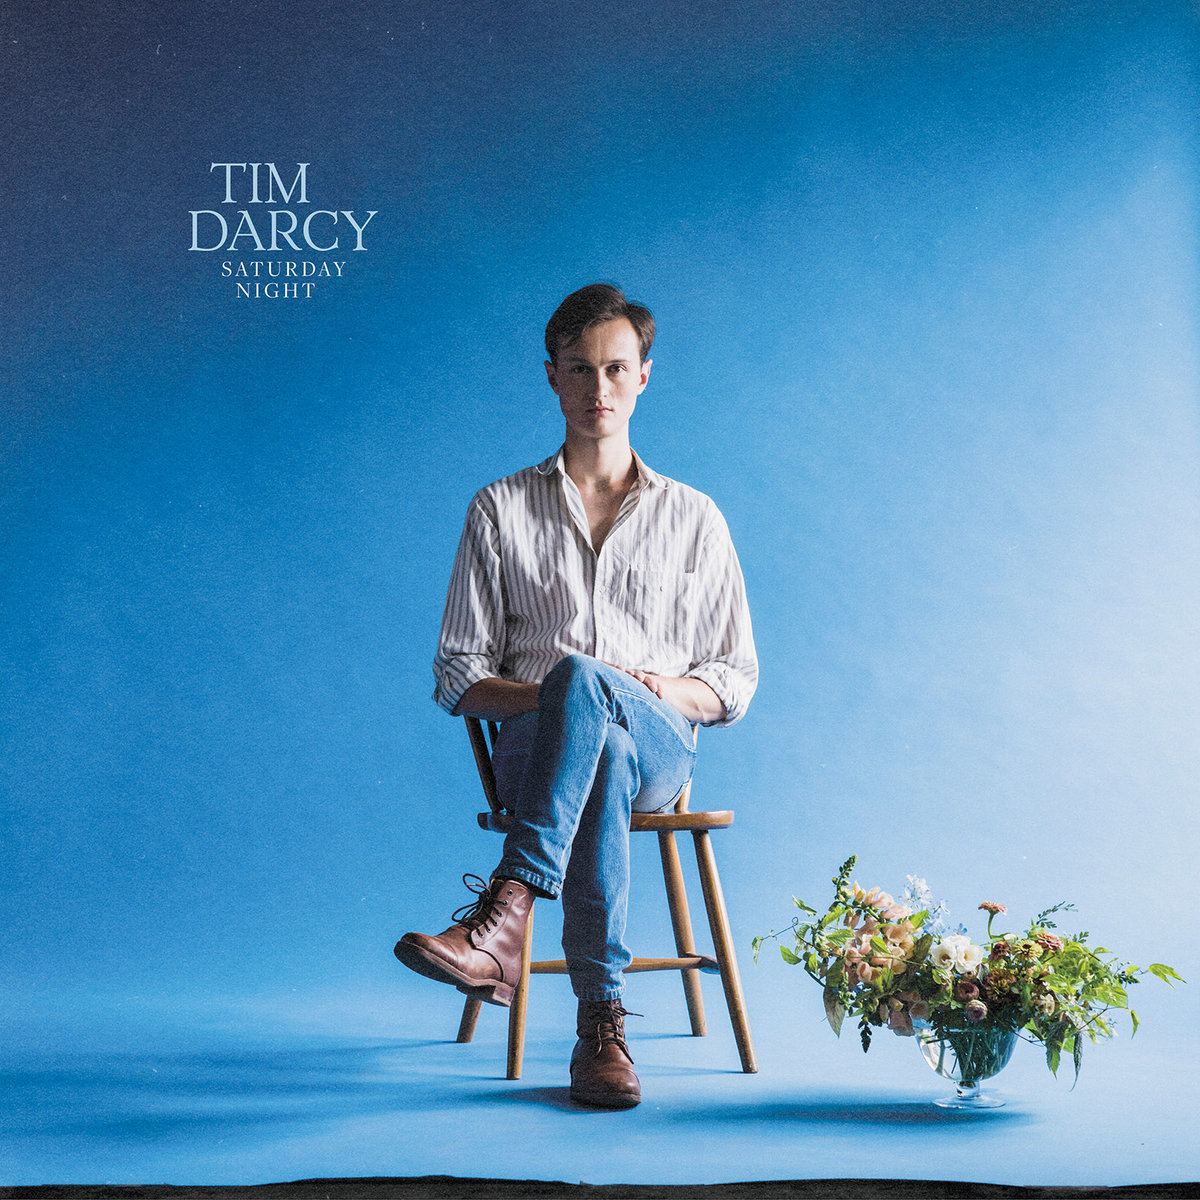 tim darcy saturday night album Ought frontman Tim Darcy announces debut solo album, shares Tall Glass of Water    listen